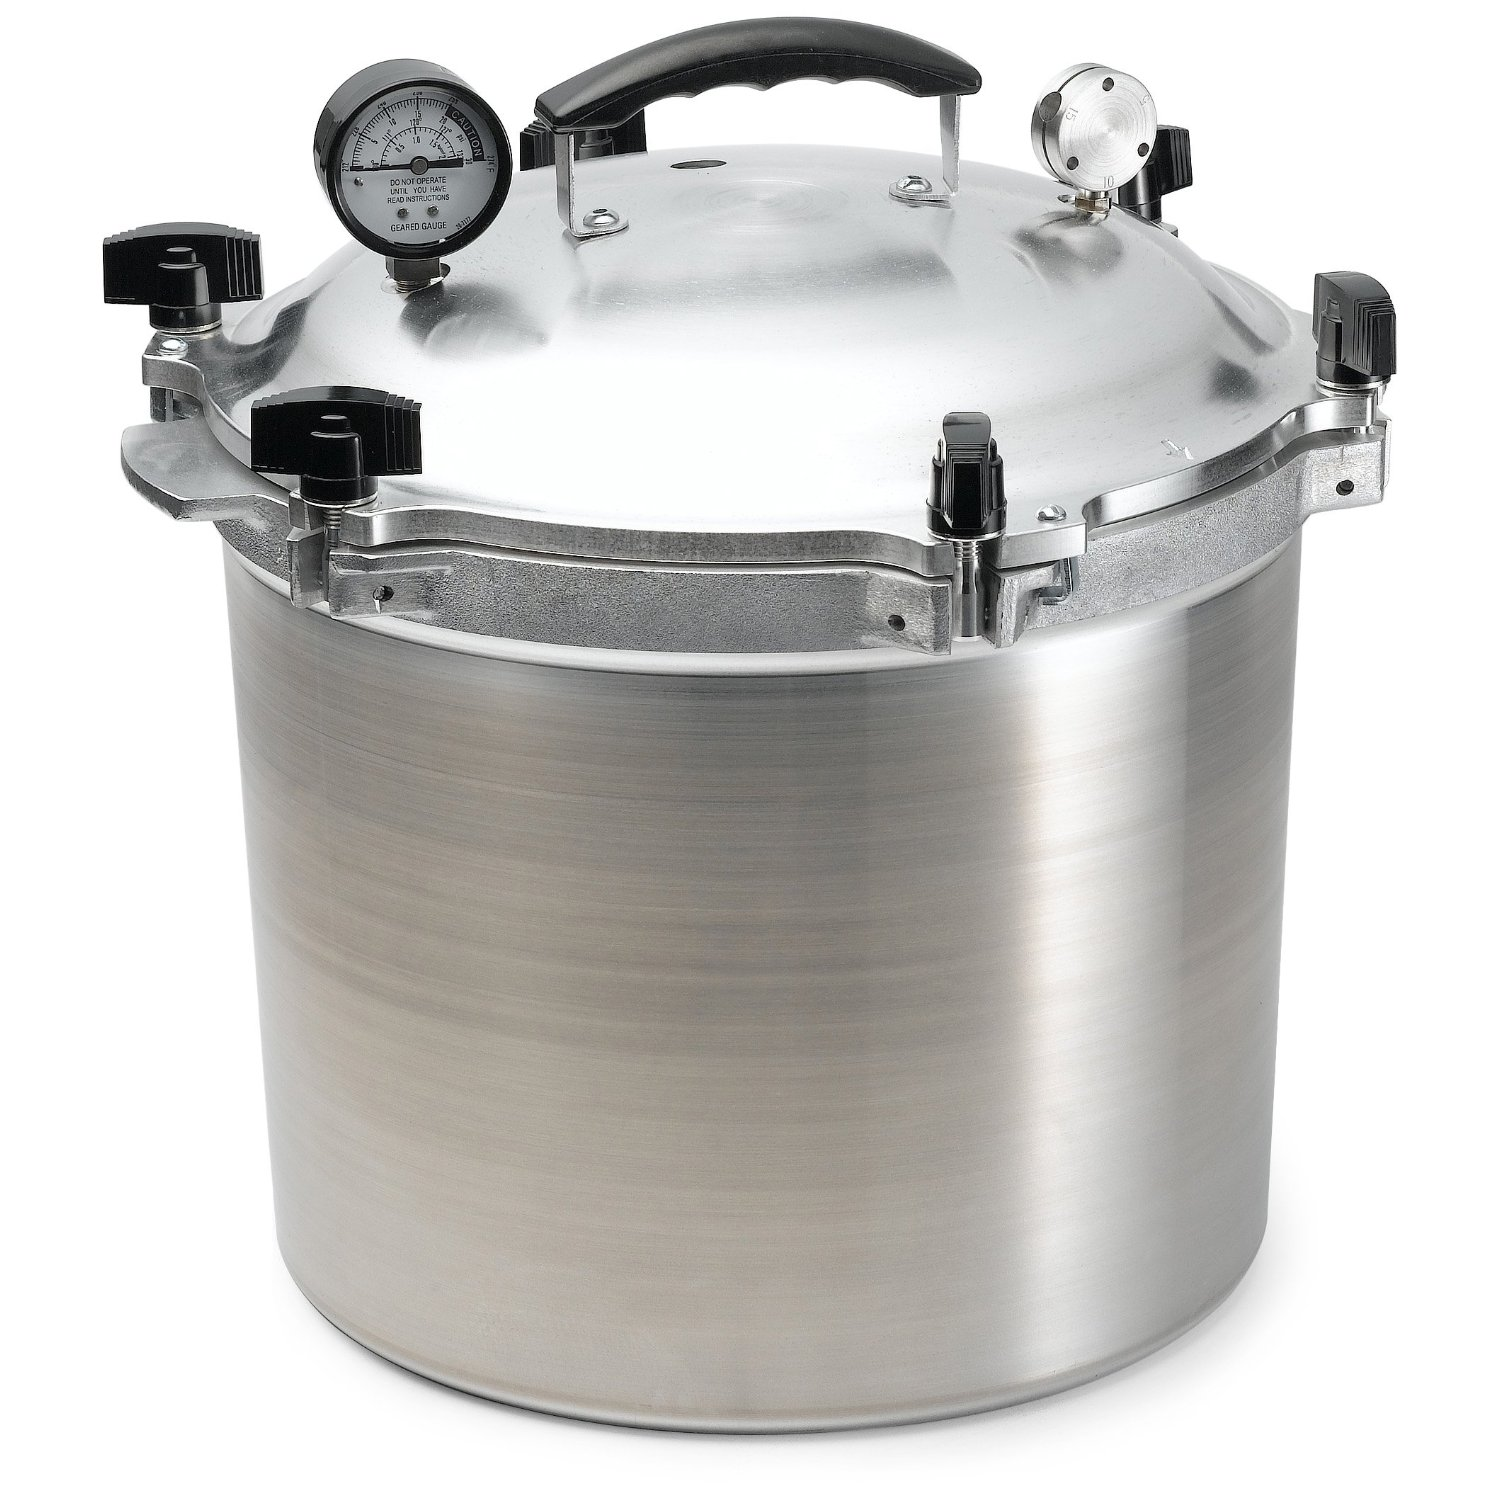 All American pressure canner 22 quarts